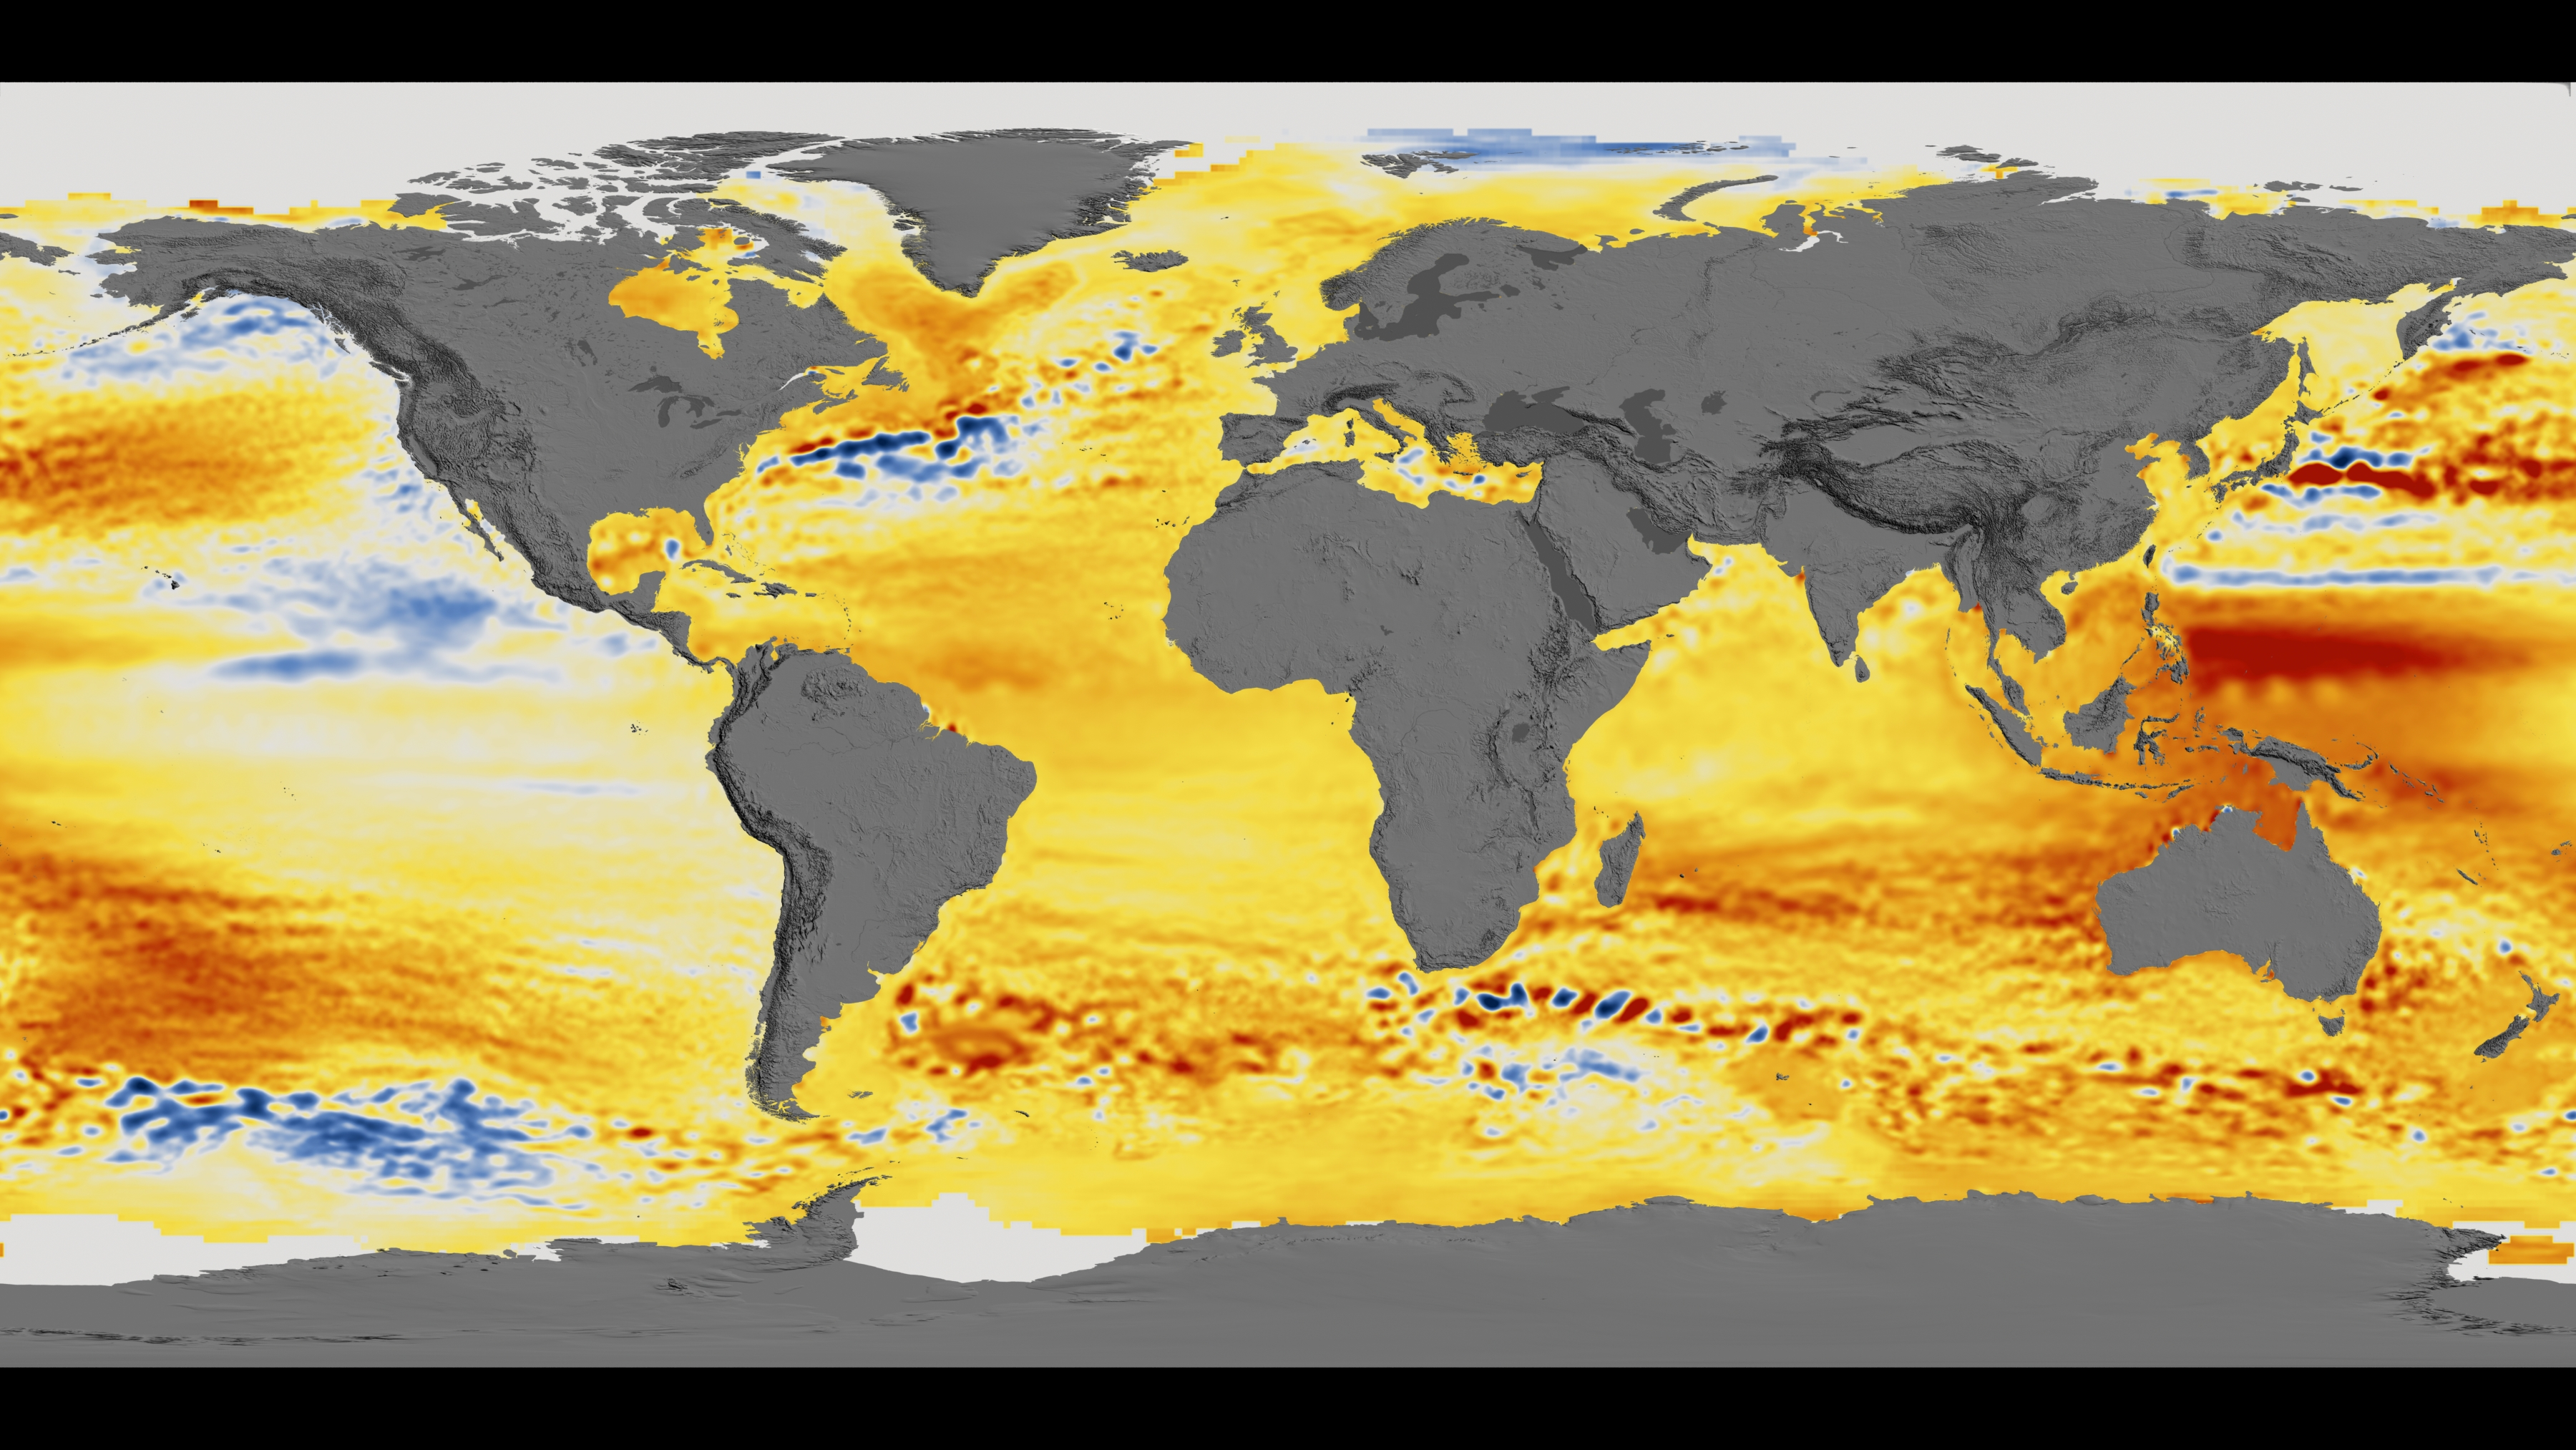 Sea Level Map New NASA Model Maps Sea Level Rise Like Never Before (Video) | Space